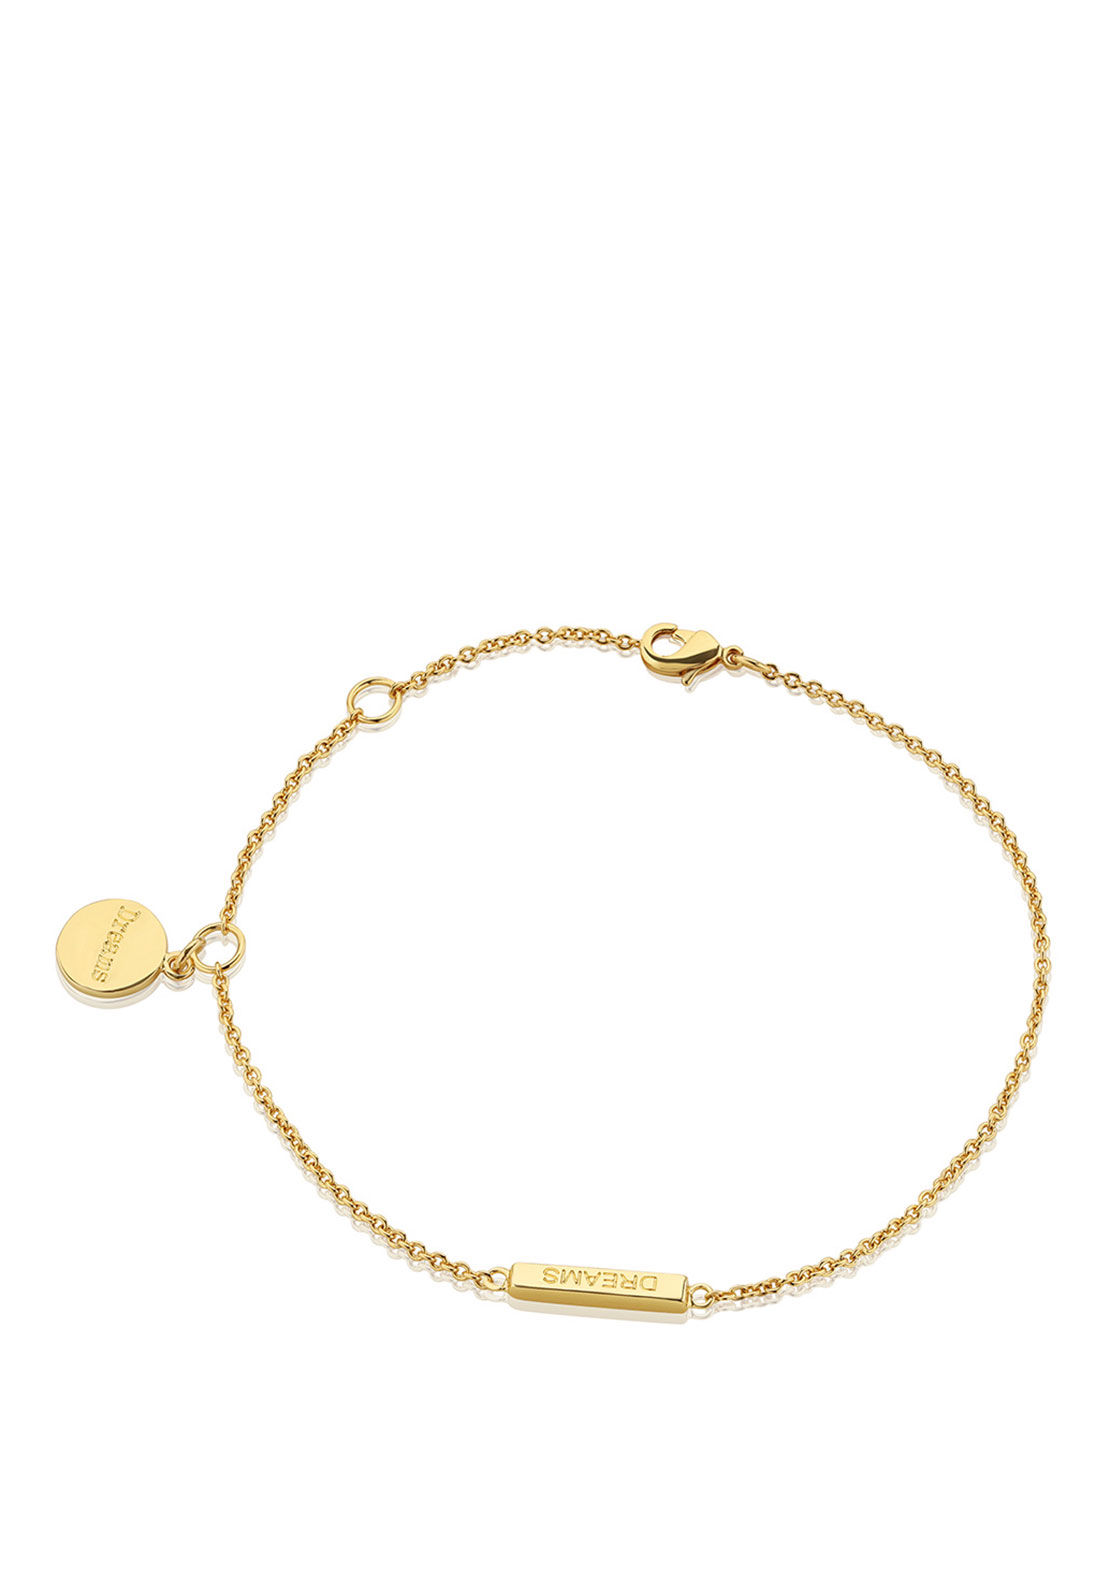 Newbridge Amy Pillar Bracelet, Gold